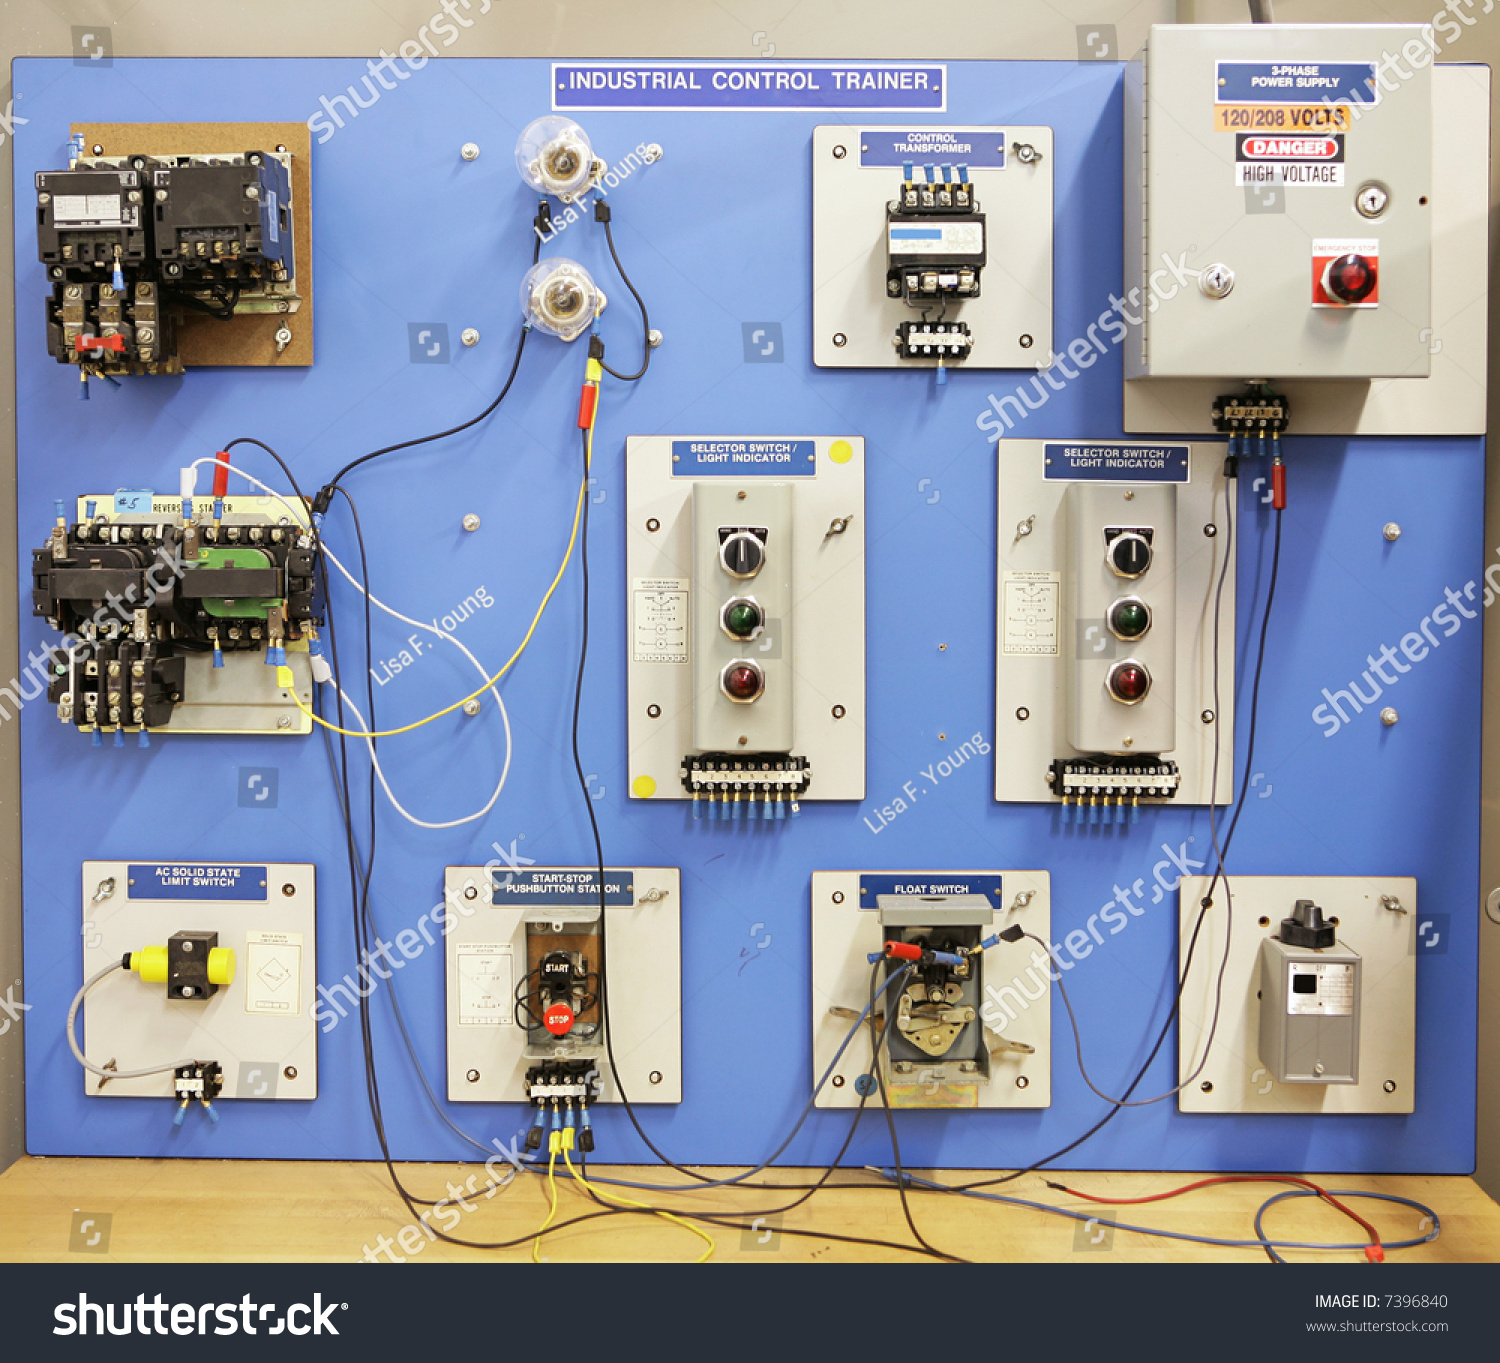 control panel wiring courses control image wiring panel board wiring training panel auto wiring diagram schematic on control panel wiring courses